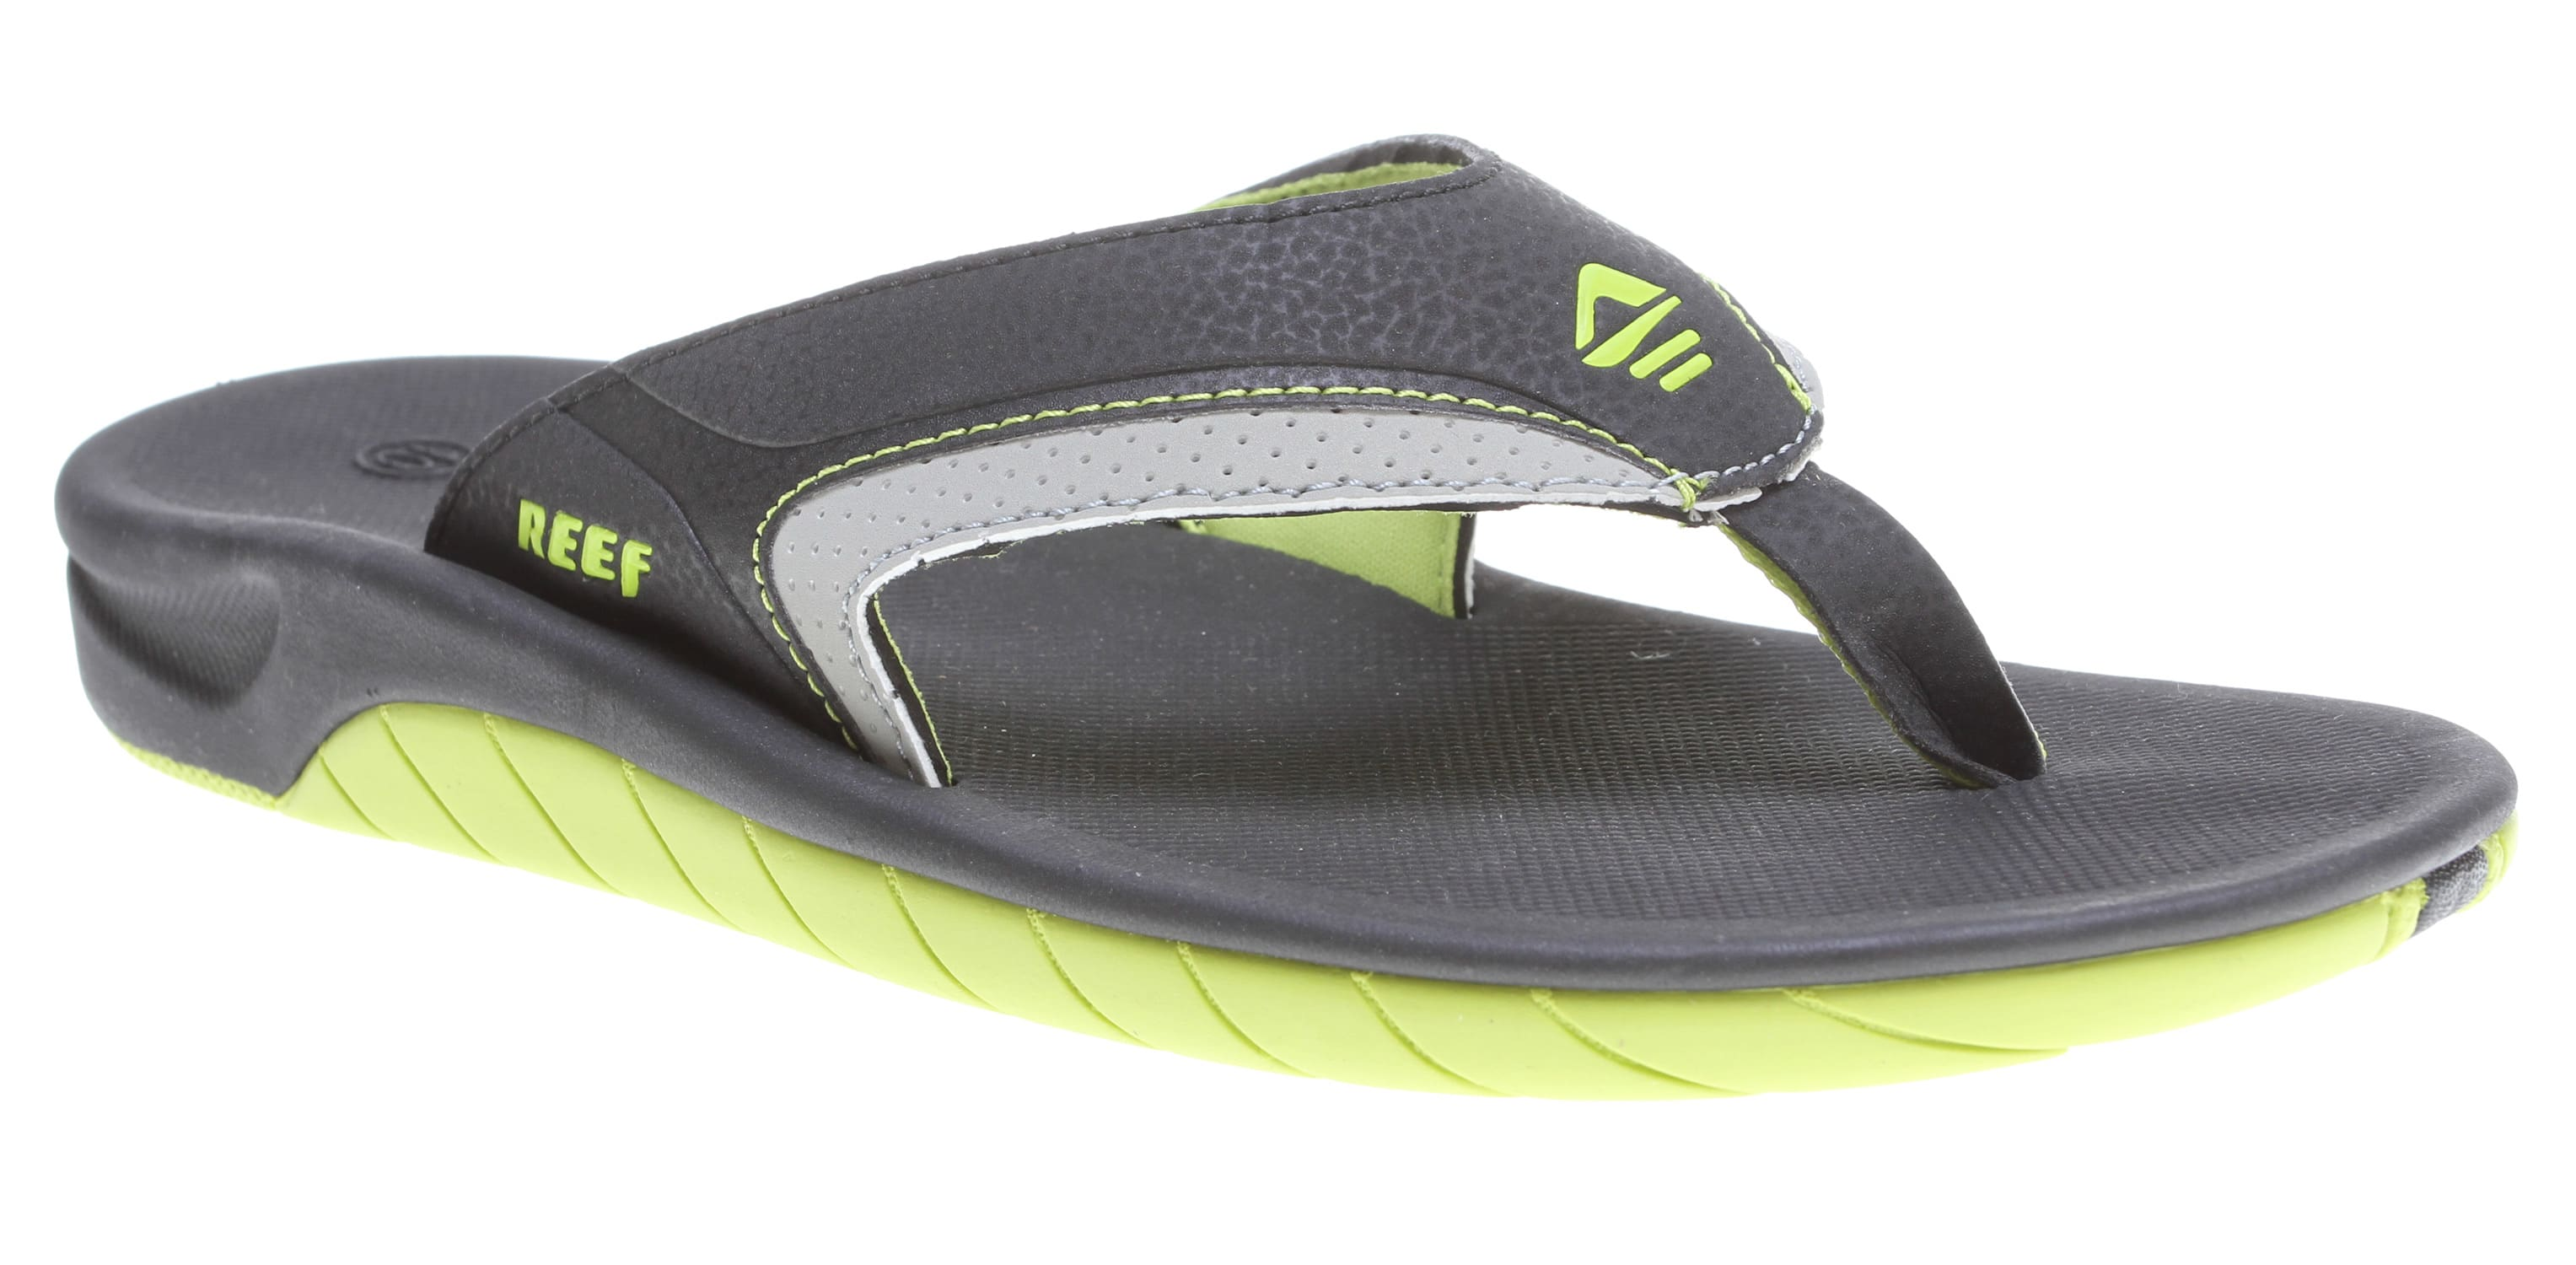 d97556542d87 Reef Slap II Sandals - thumbnail 2